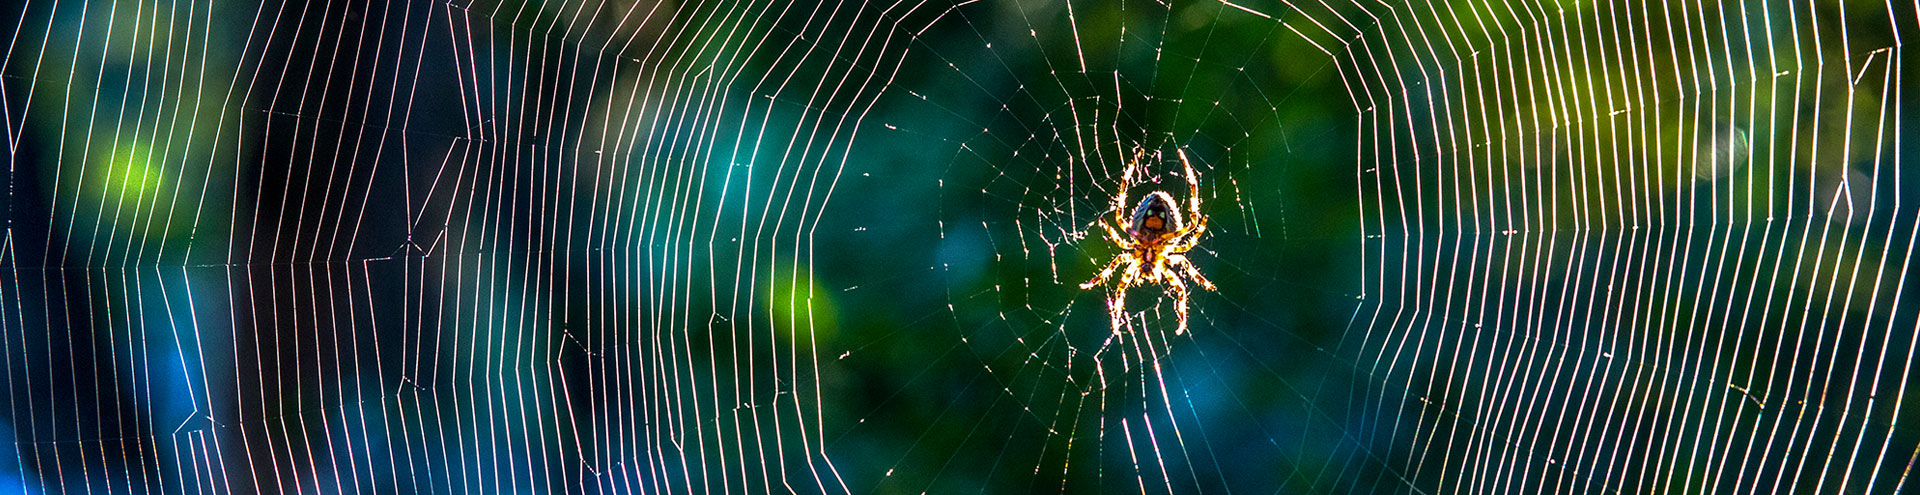 A spider in the center of the web it recently spun.